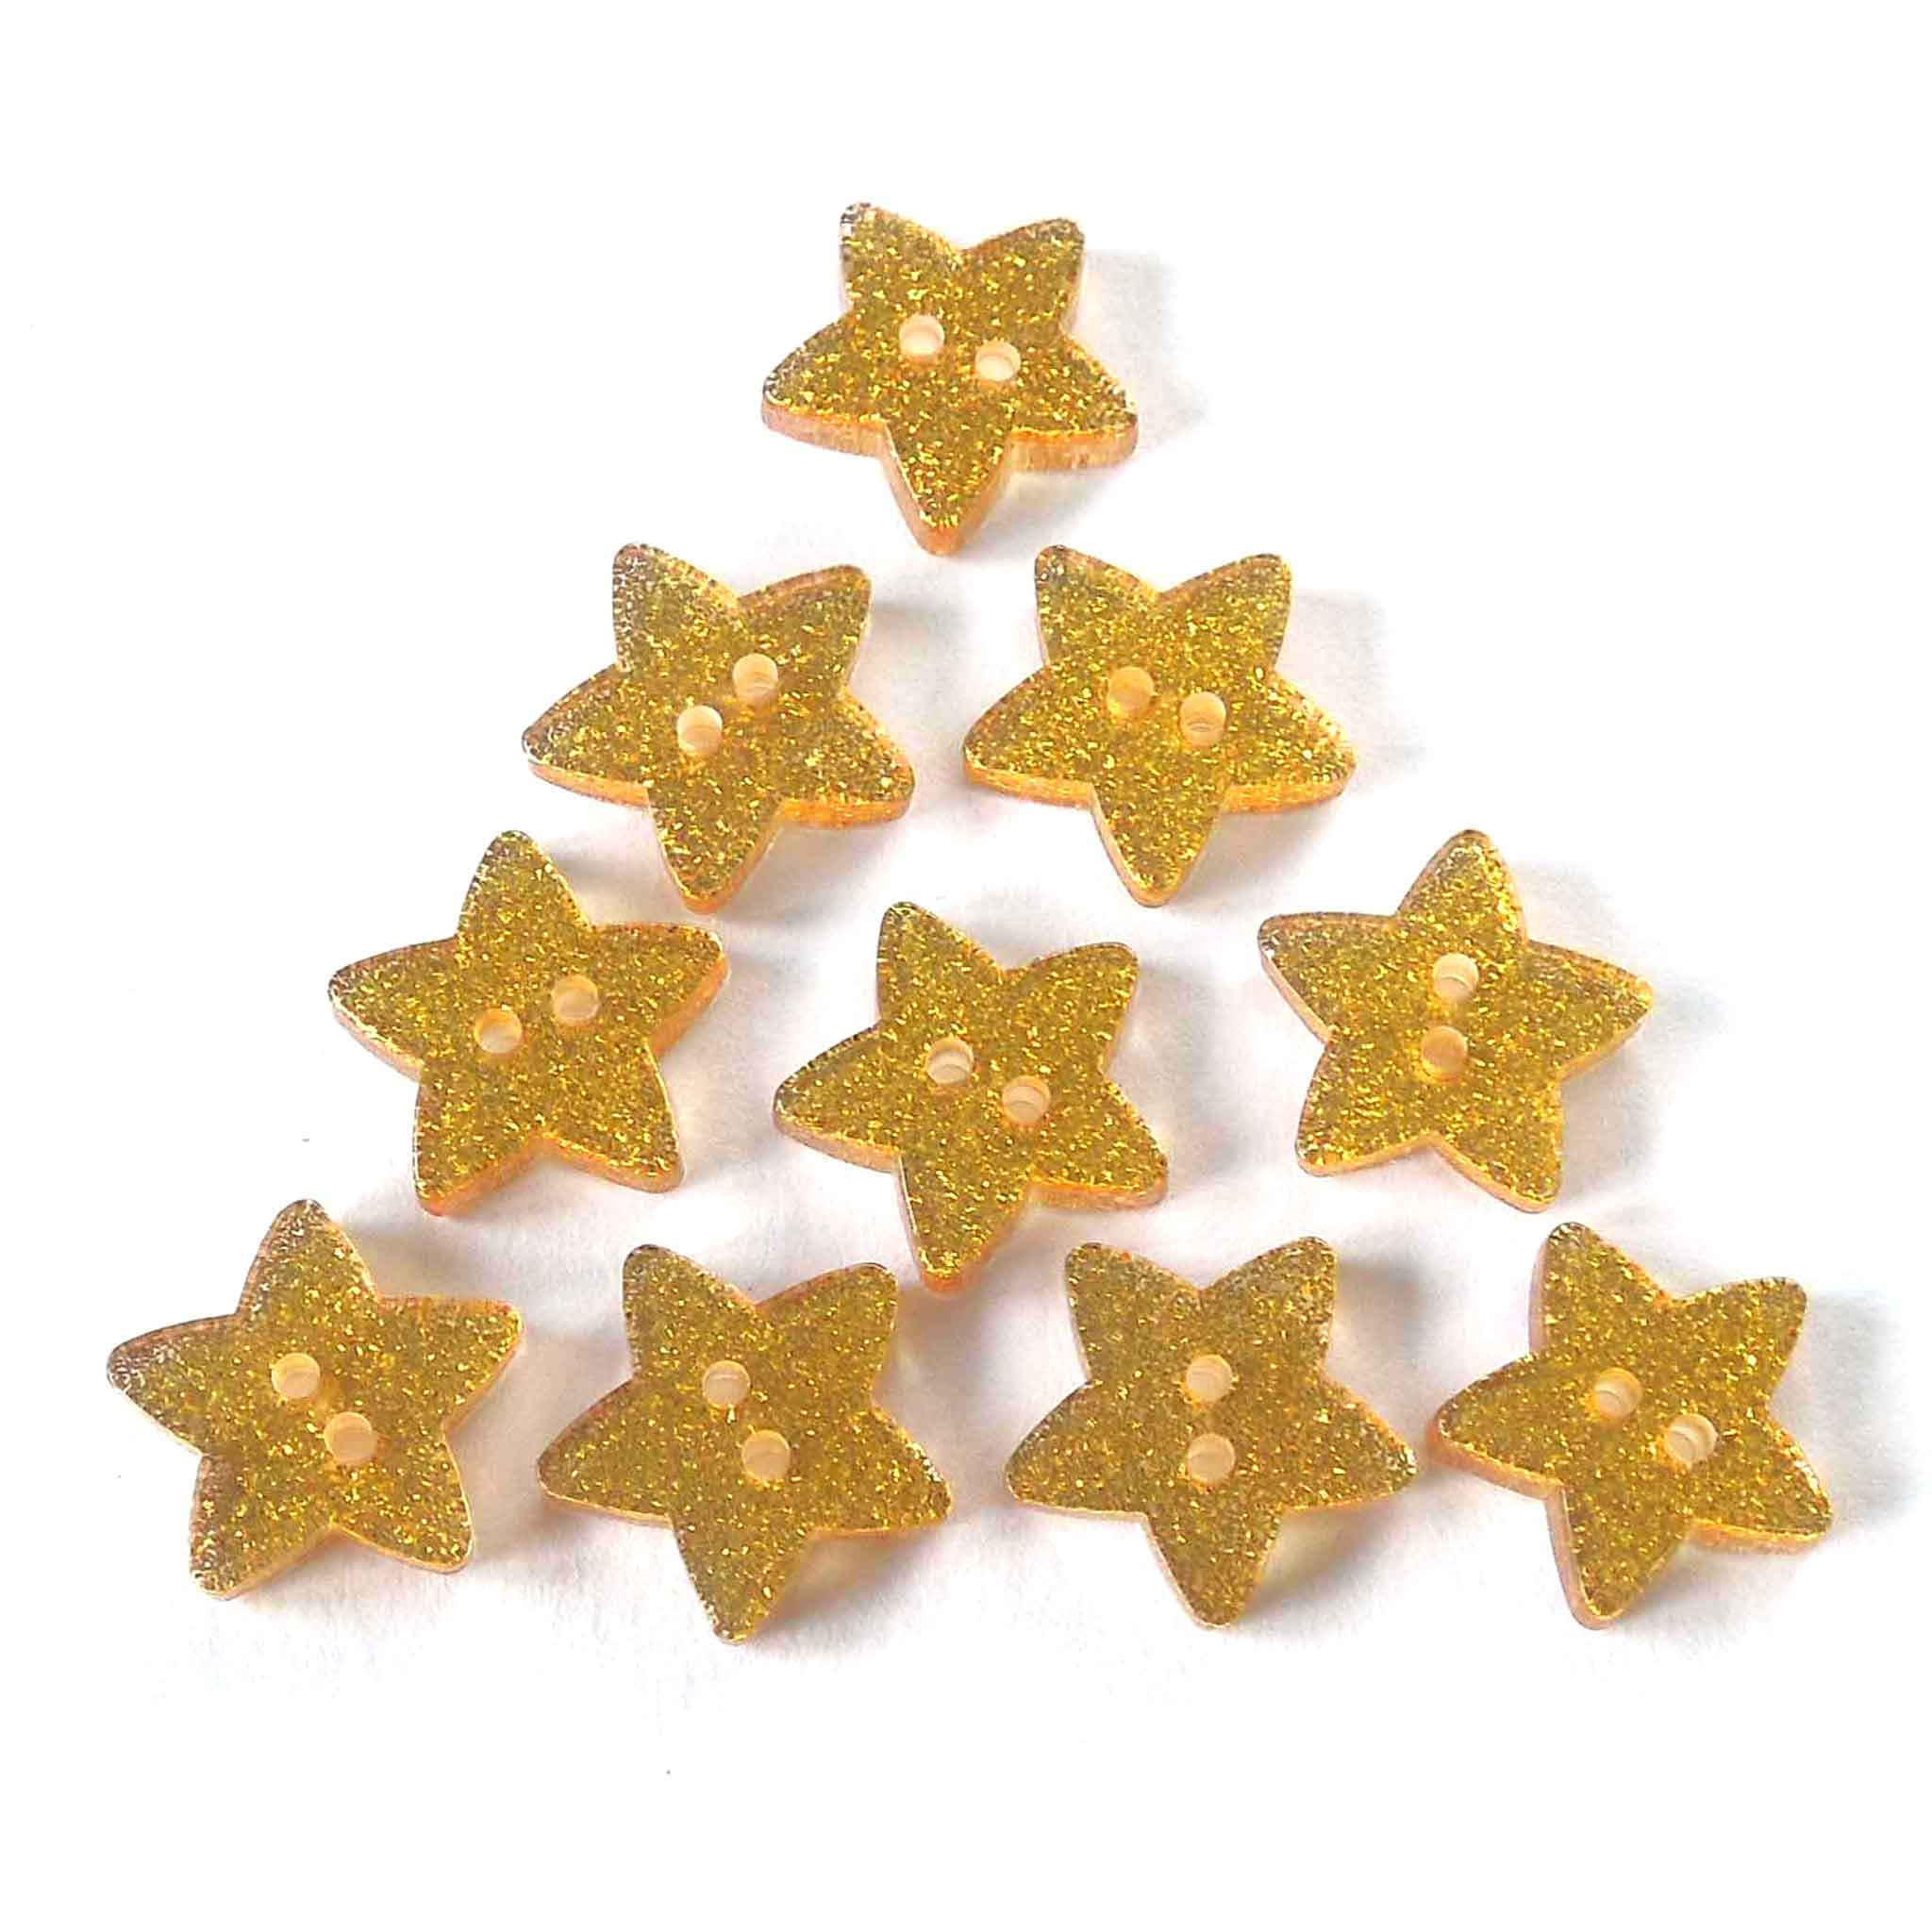 18 mm Gold Glitter Star Buttons, Trimits 2 Hole Buttons, Pack of 10